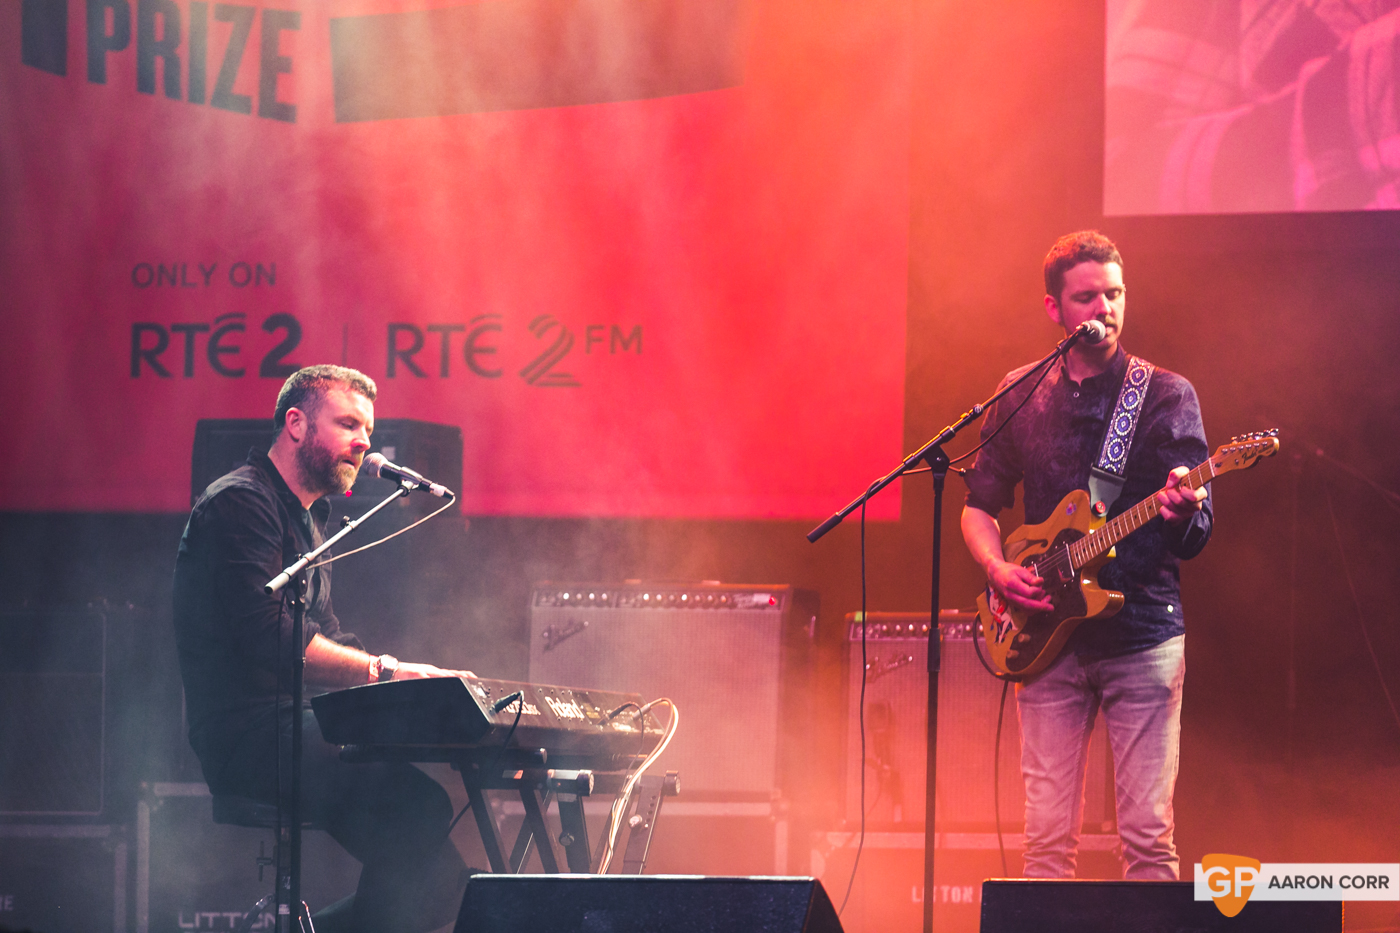 Mick Flannery at Choice Music Prize 2020 in Vicar Street, Dublin on 05-Mar-20 by Aaron Corr-5581